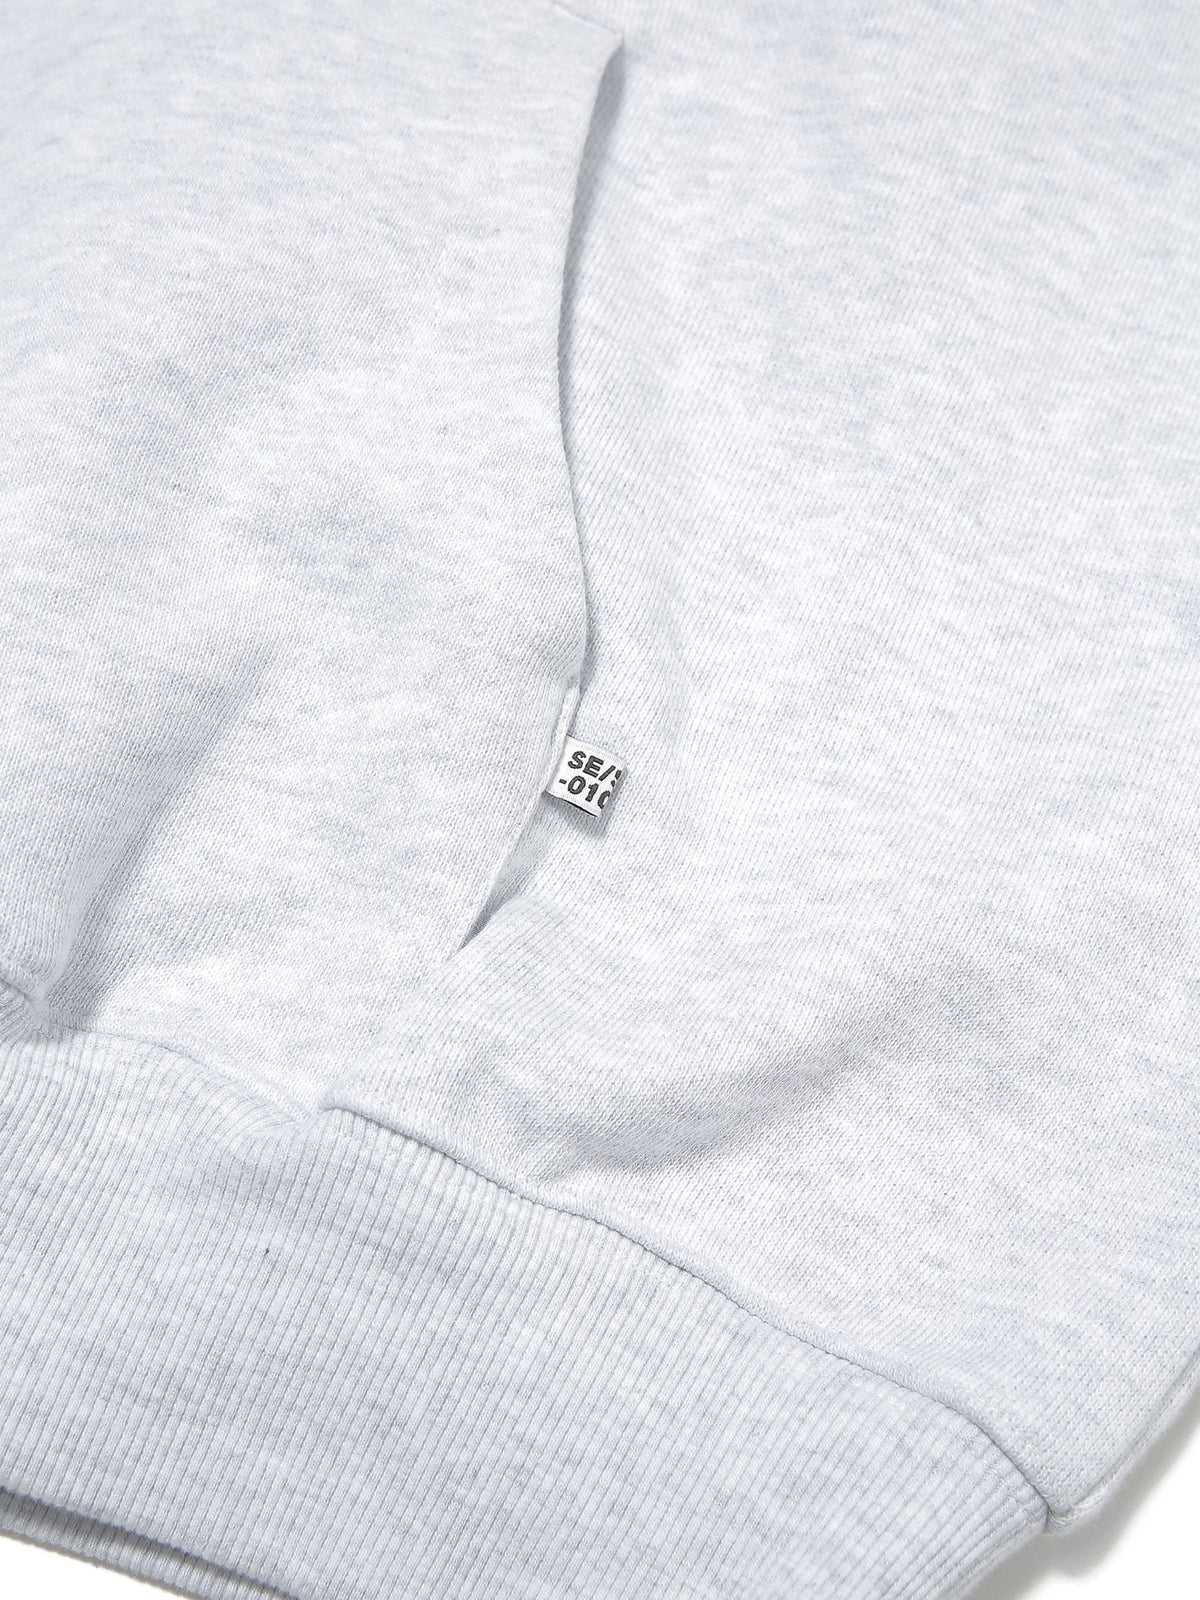 T-Logo Hooded Sweatshirt 002 - thisisneverthat